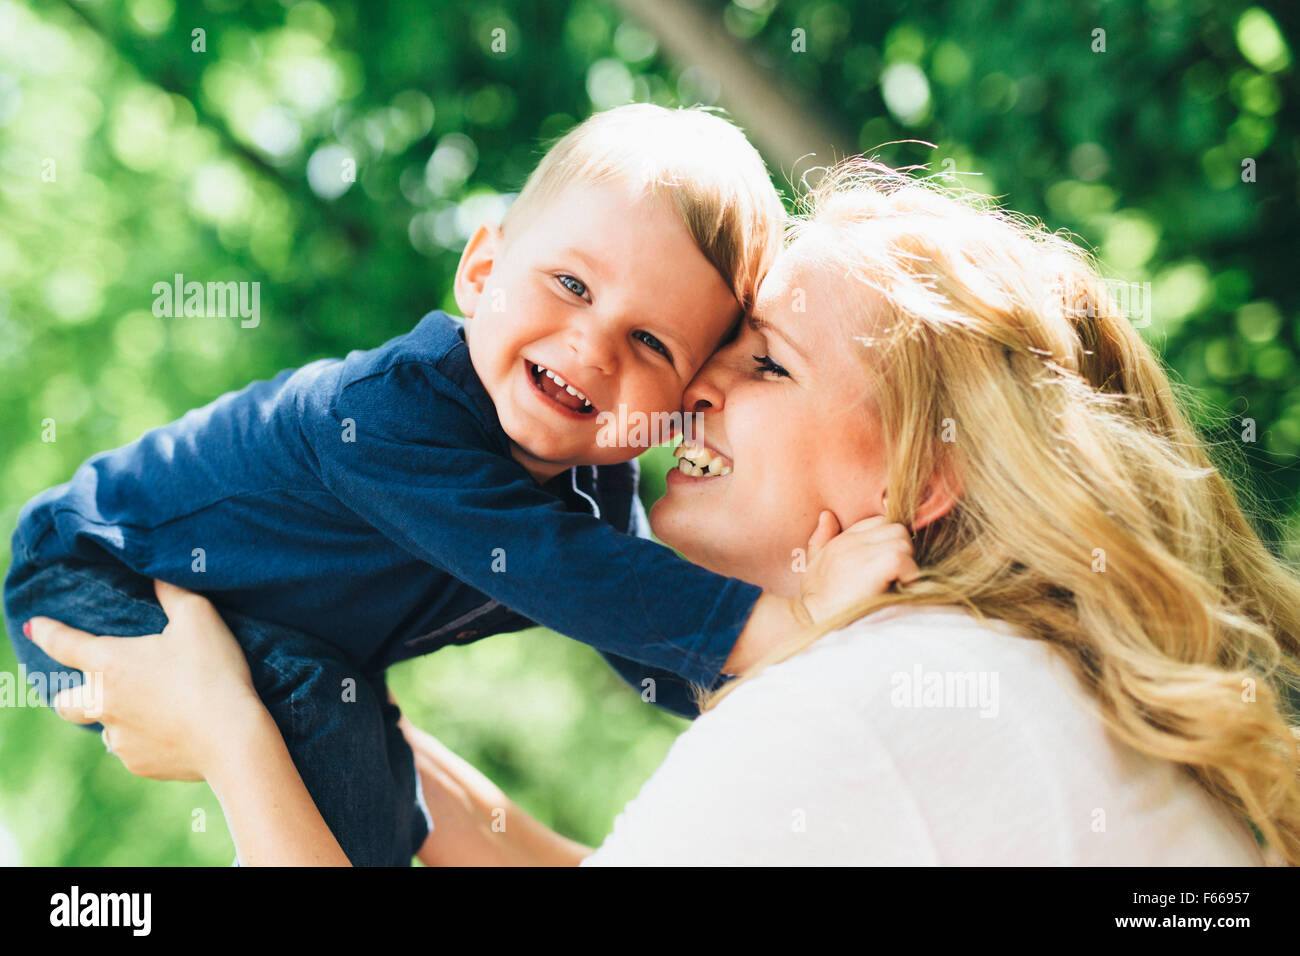 Mother smiling laughing and playing with her child outdoors on a nice summer day - Stock Image